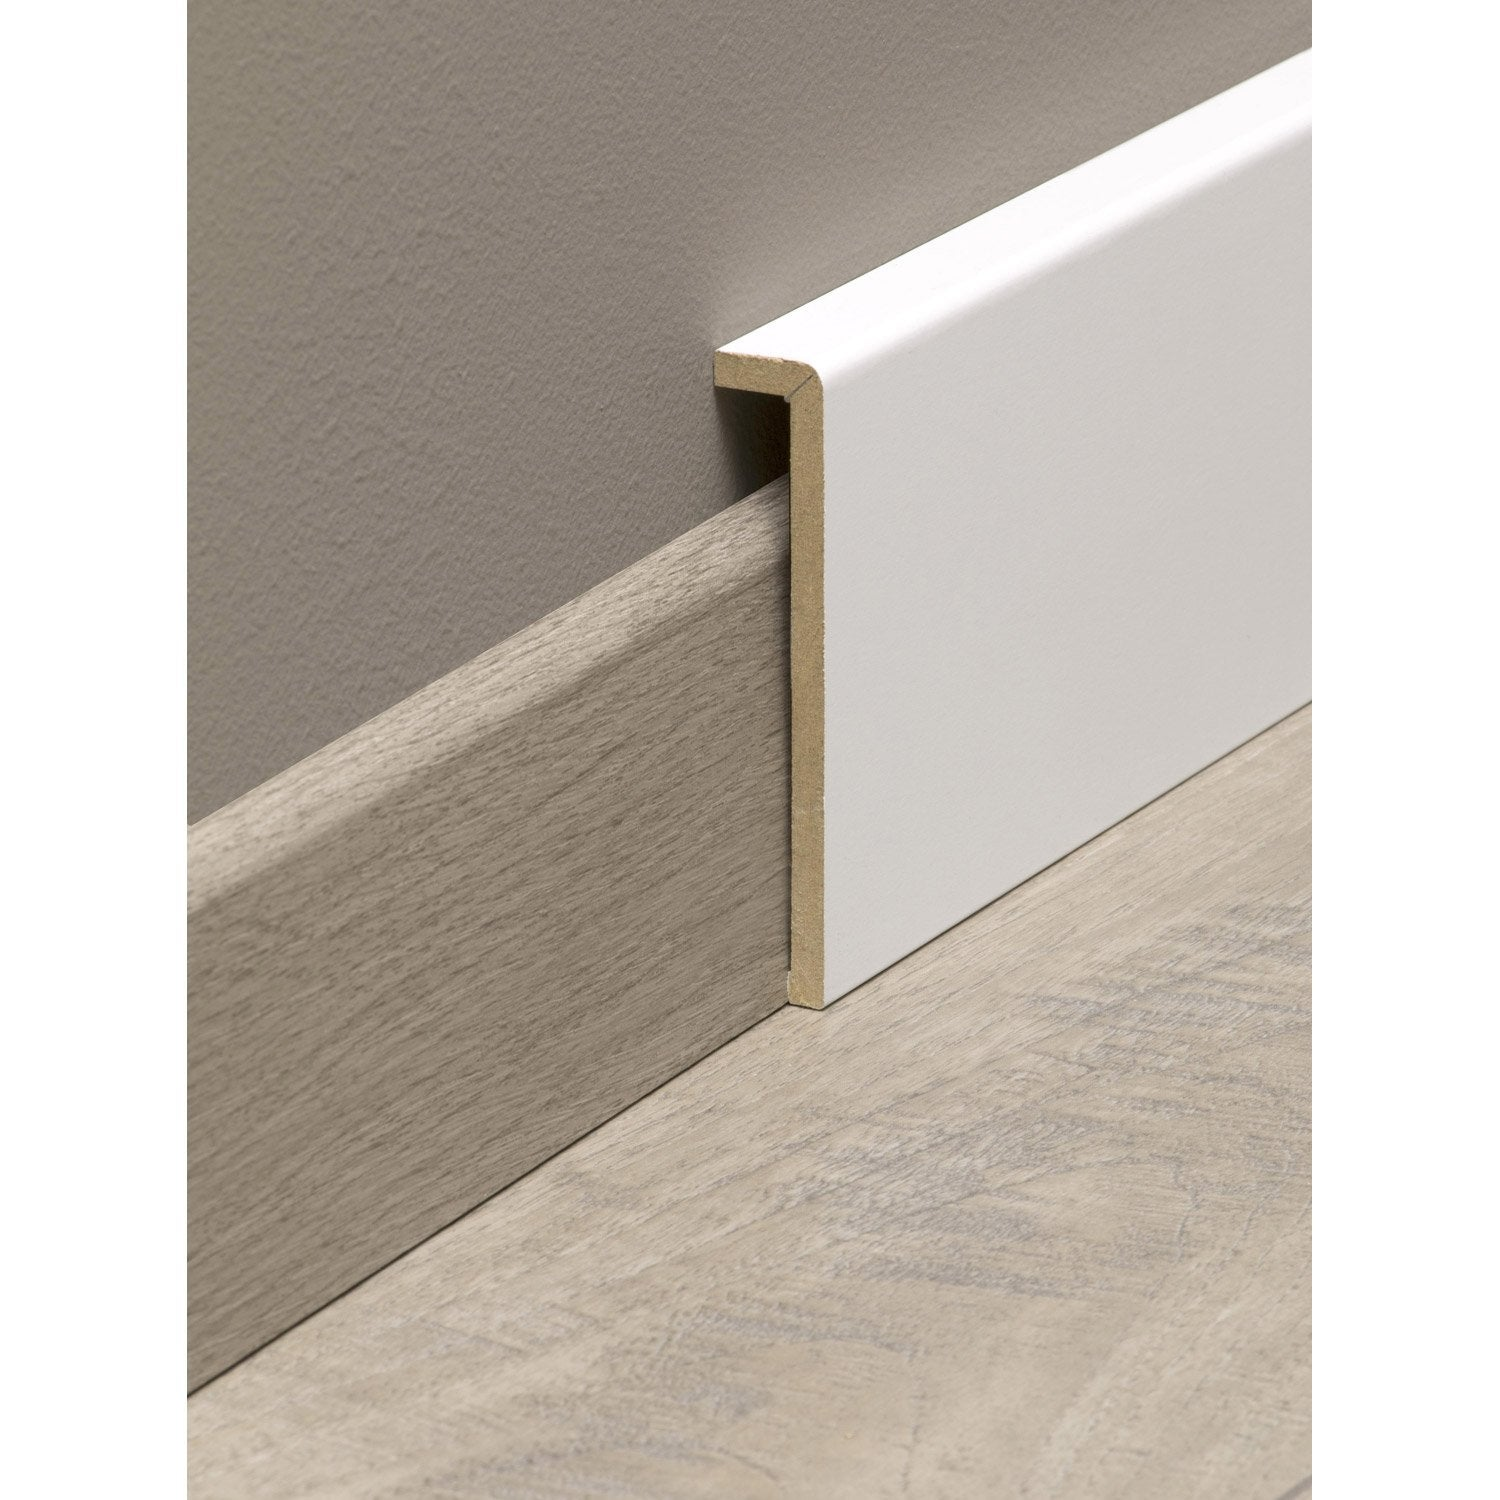 Surplinthe de r novation m dium mdf m lamin blanc 19 x 110 mm l 2 2 m - Bois medium castorama ...